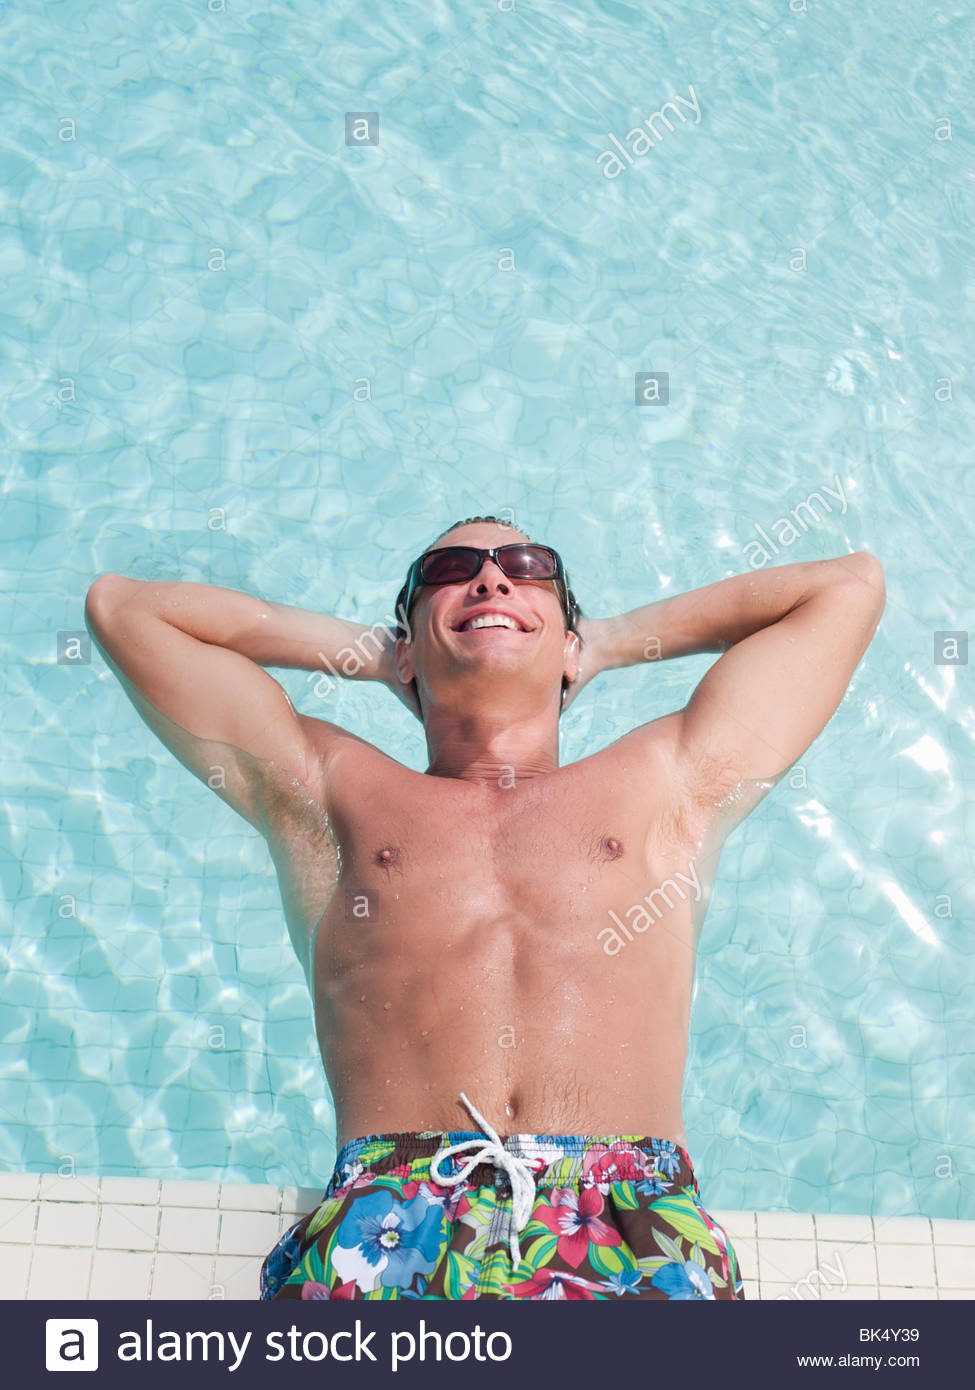 Man leaning back in swimming pool with hands behind head - Stock Image